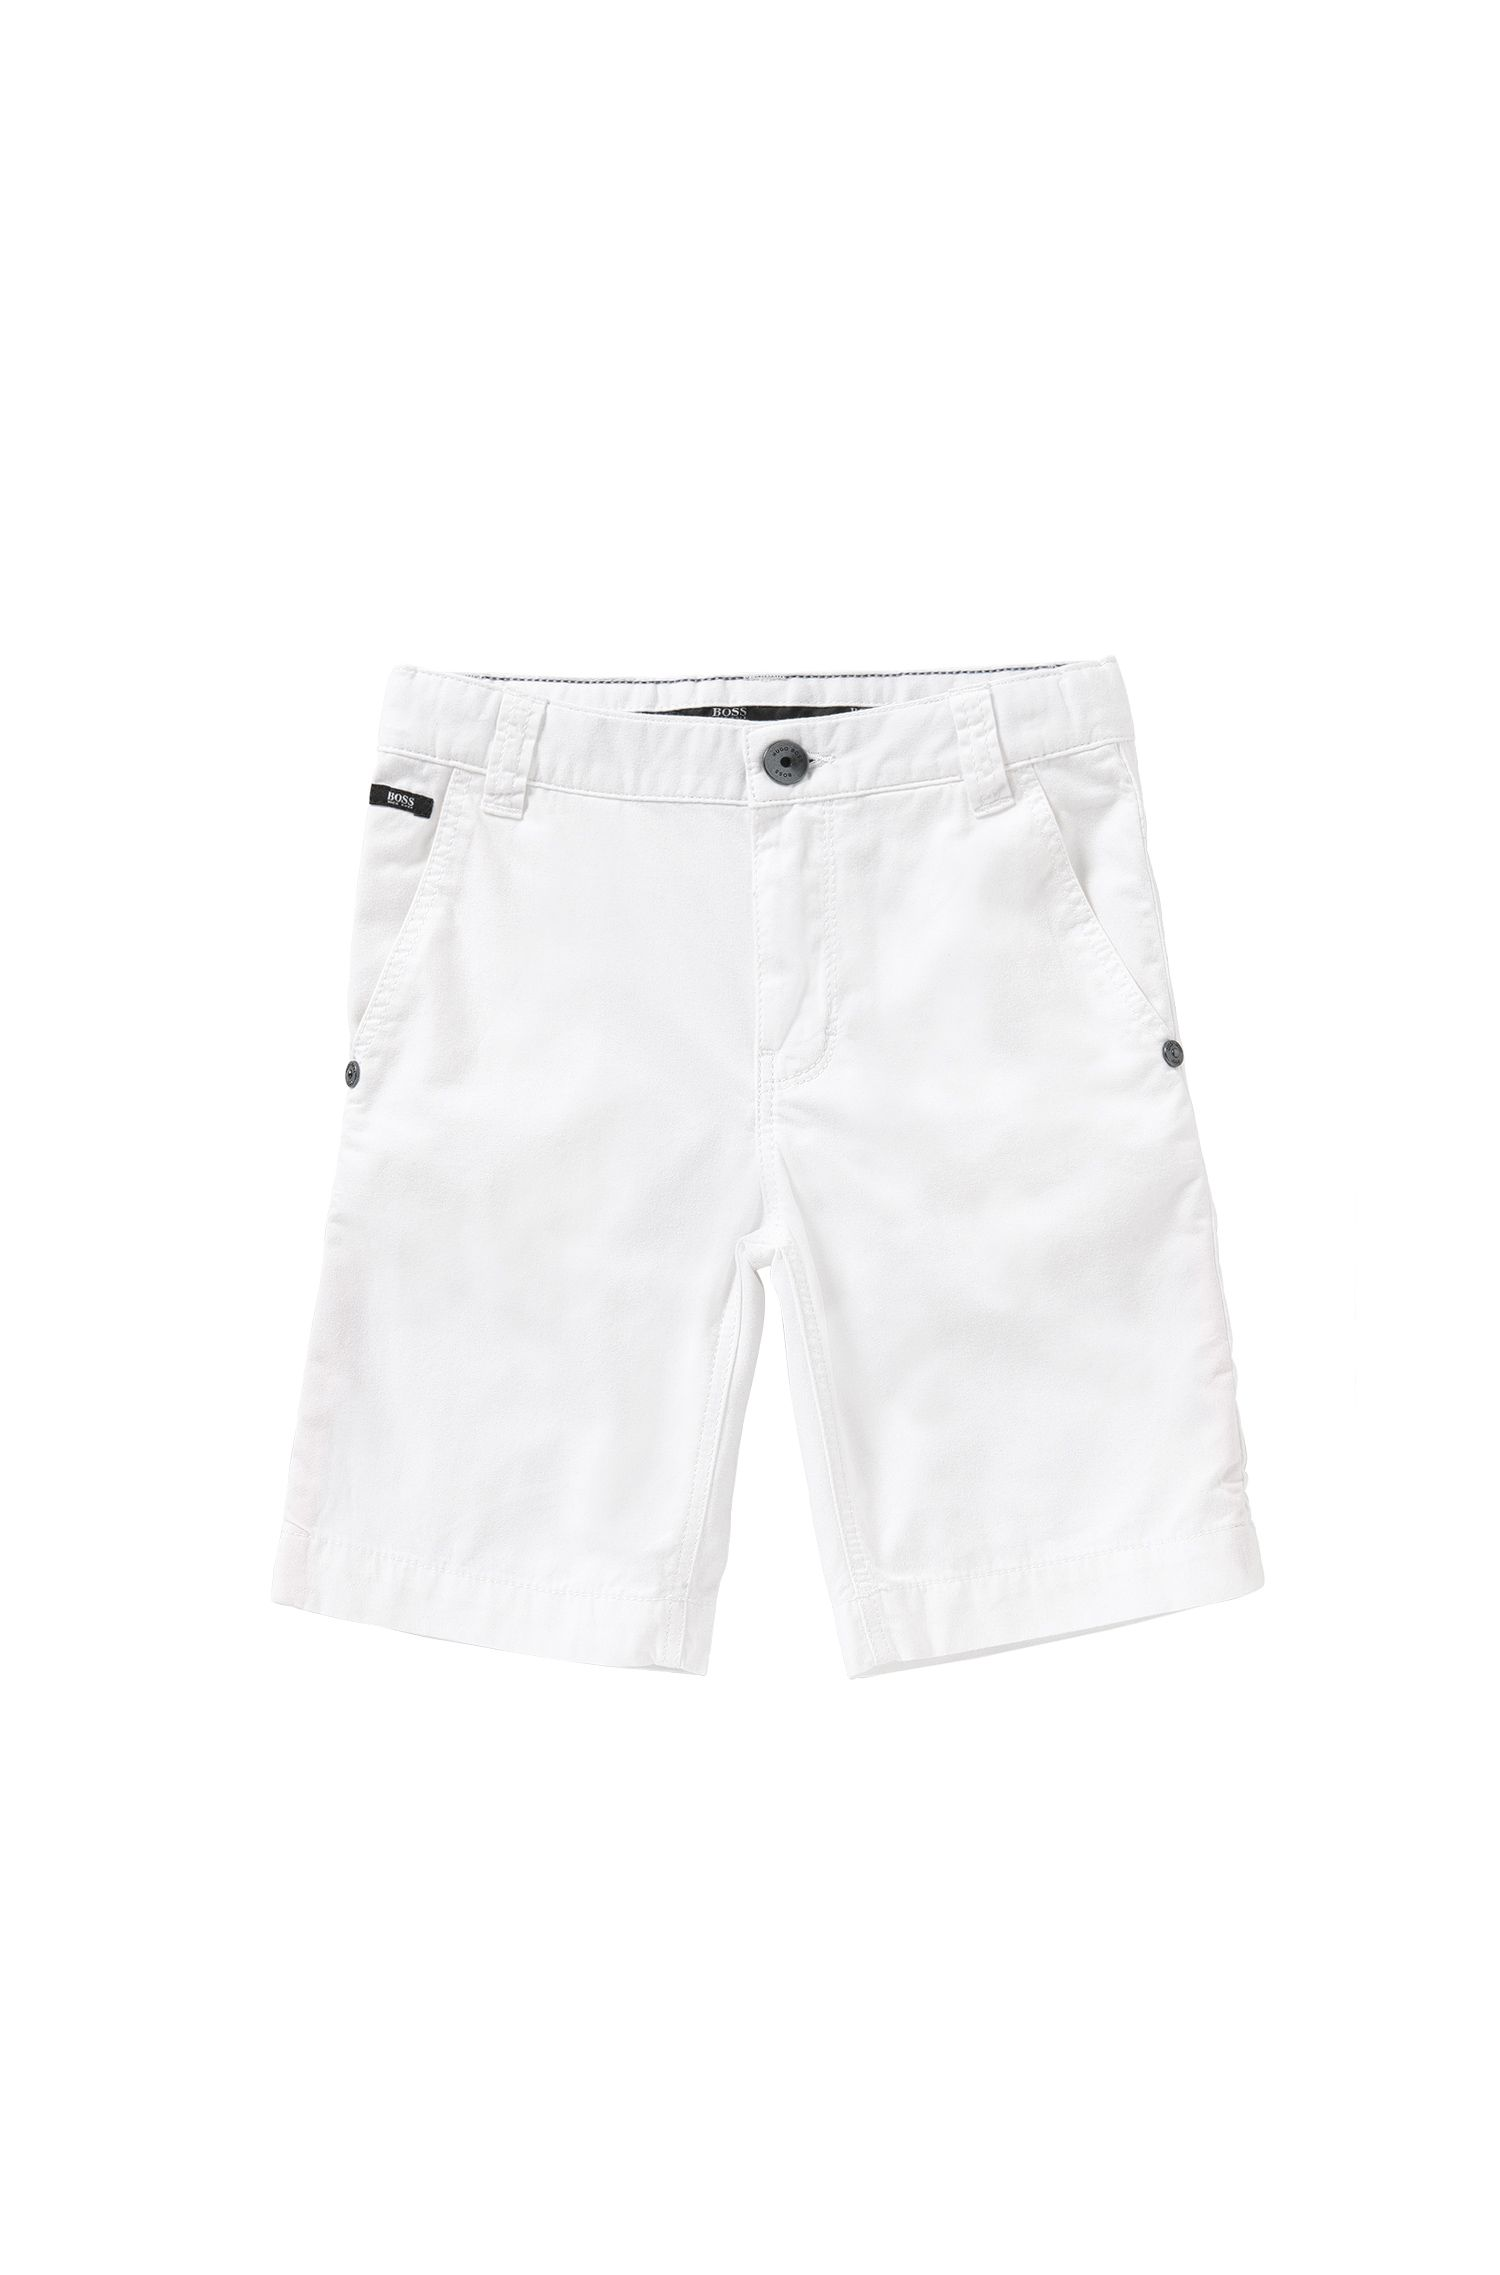 'J24386' | Boys Cotton Poplin Bermuda Shorts